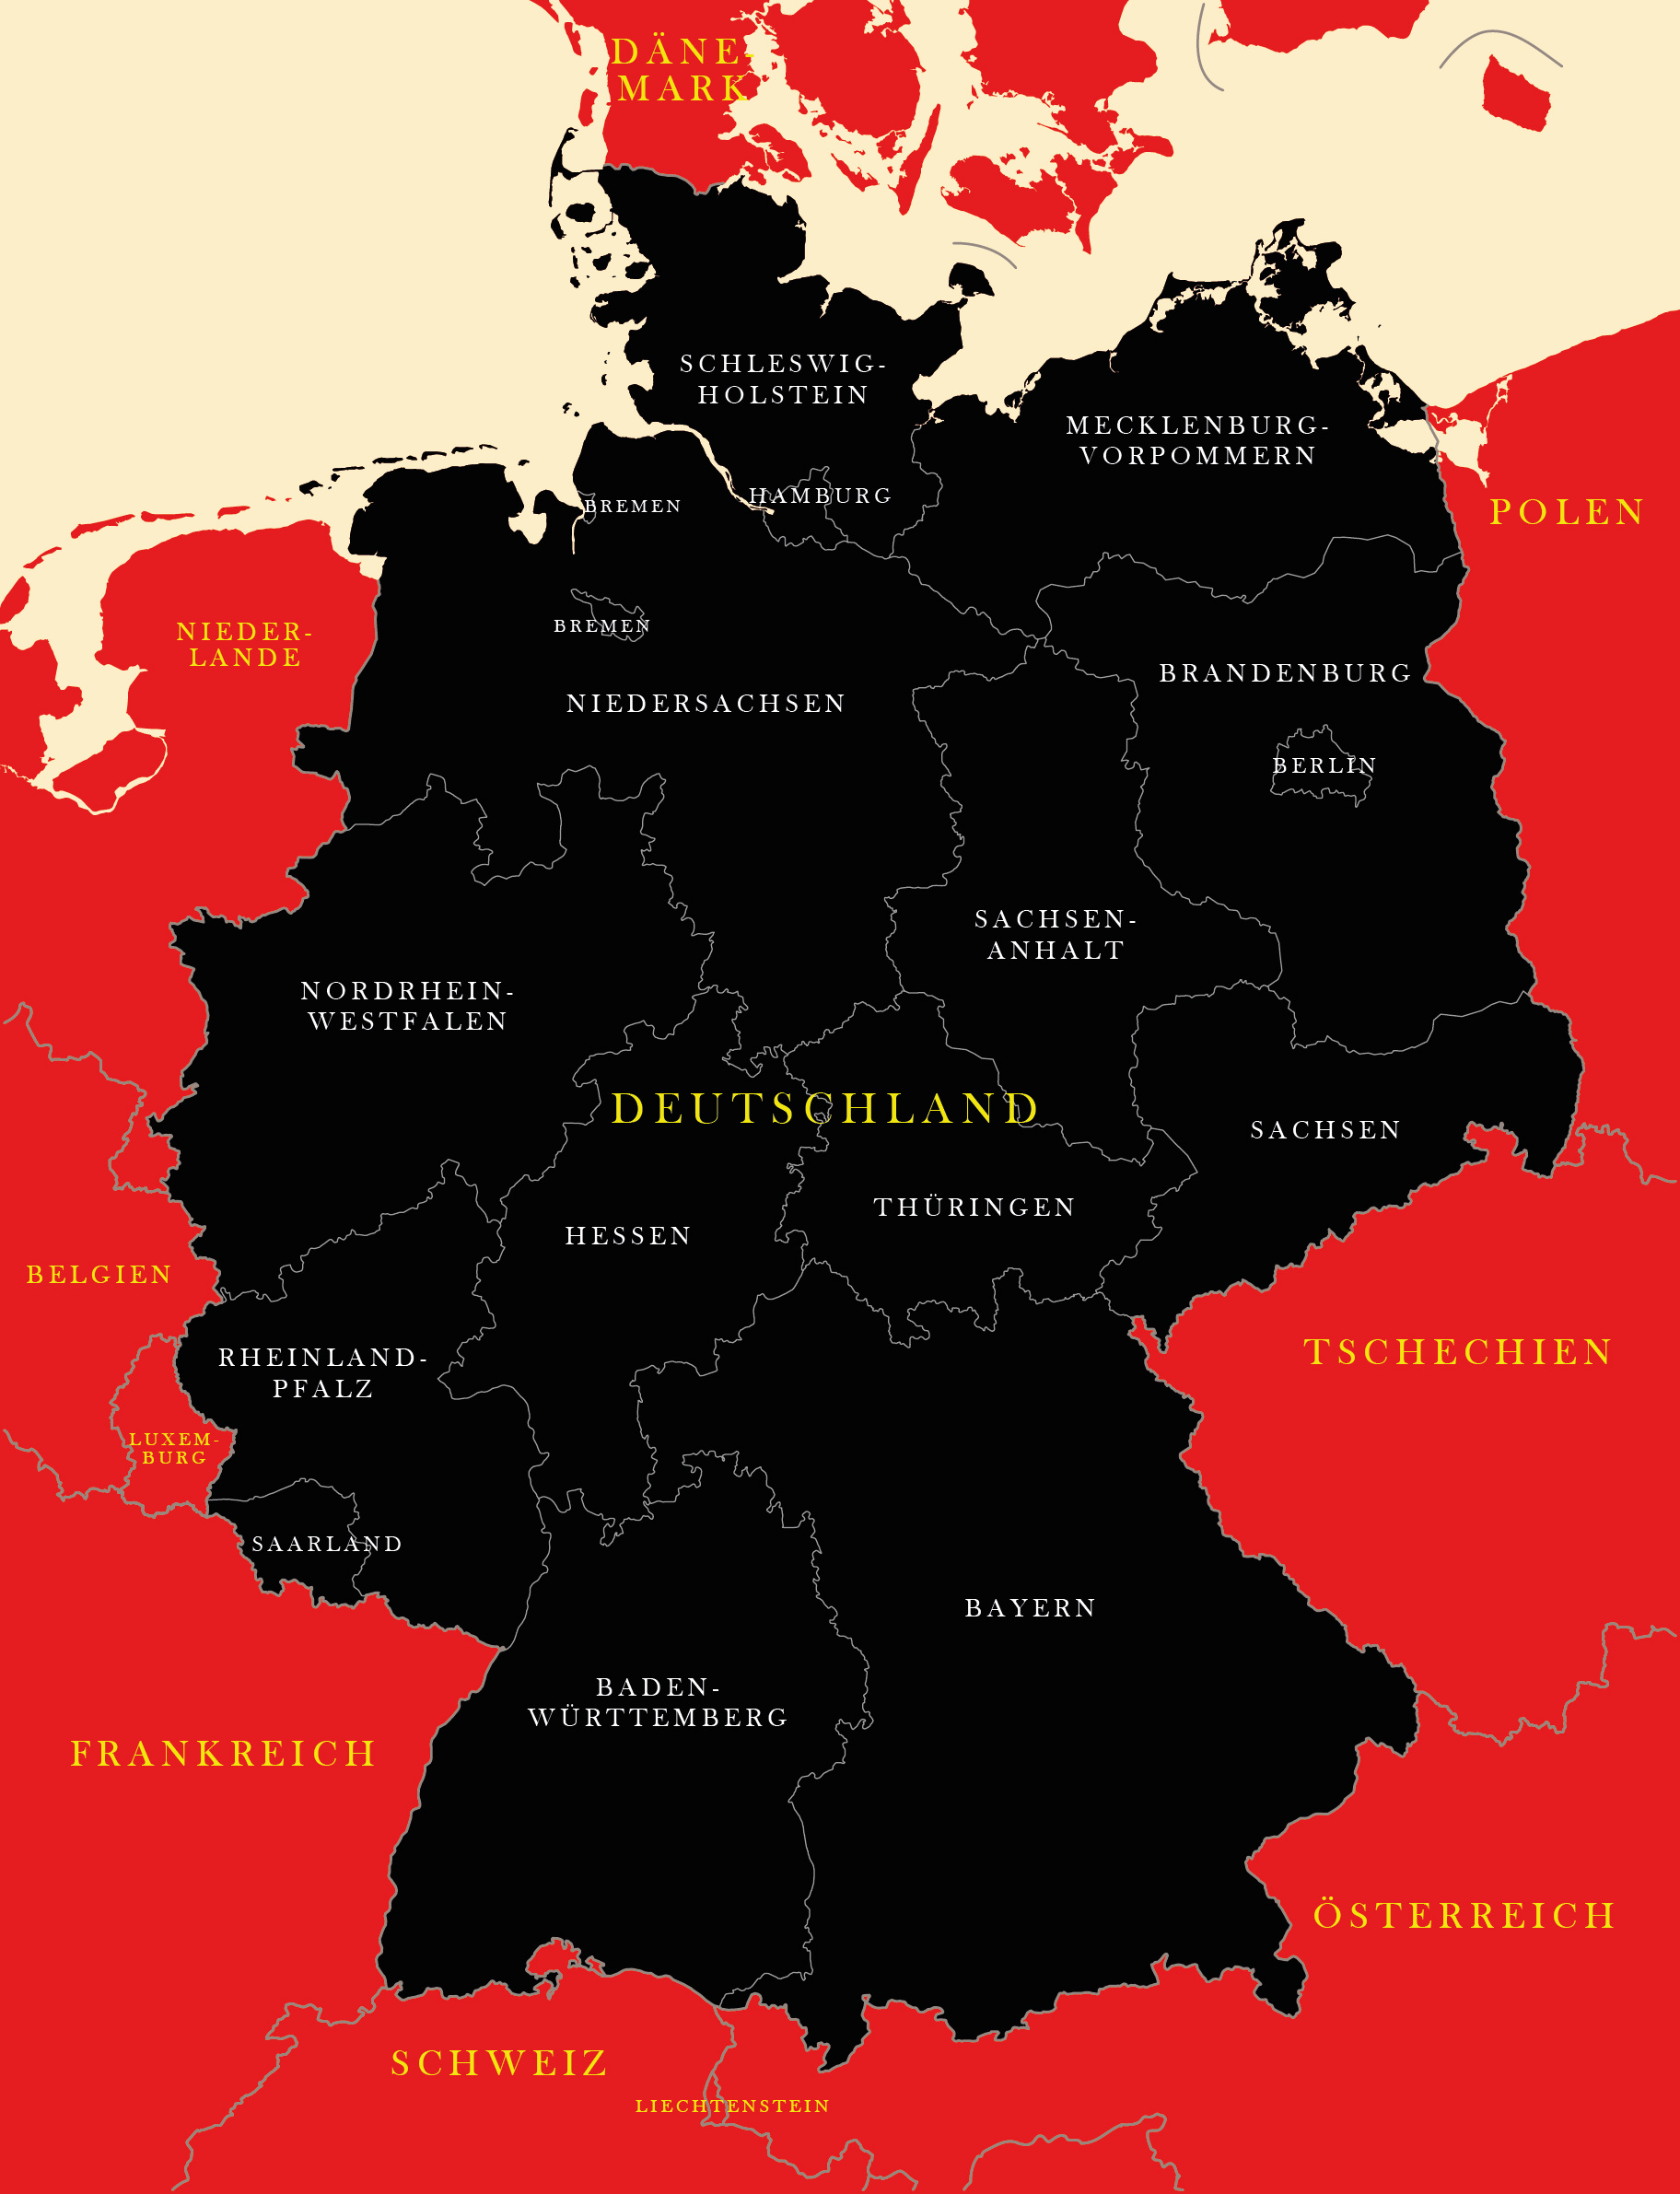 Map Of Germany German States Bundeslander Maproom